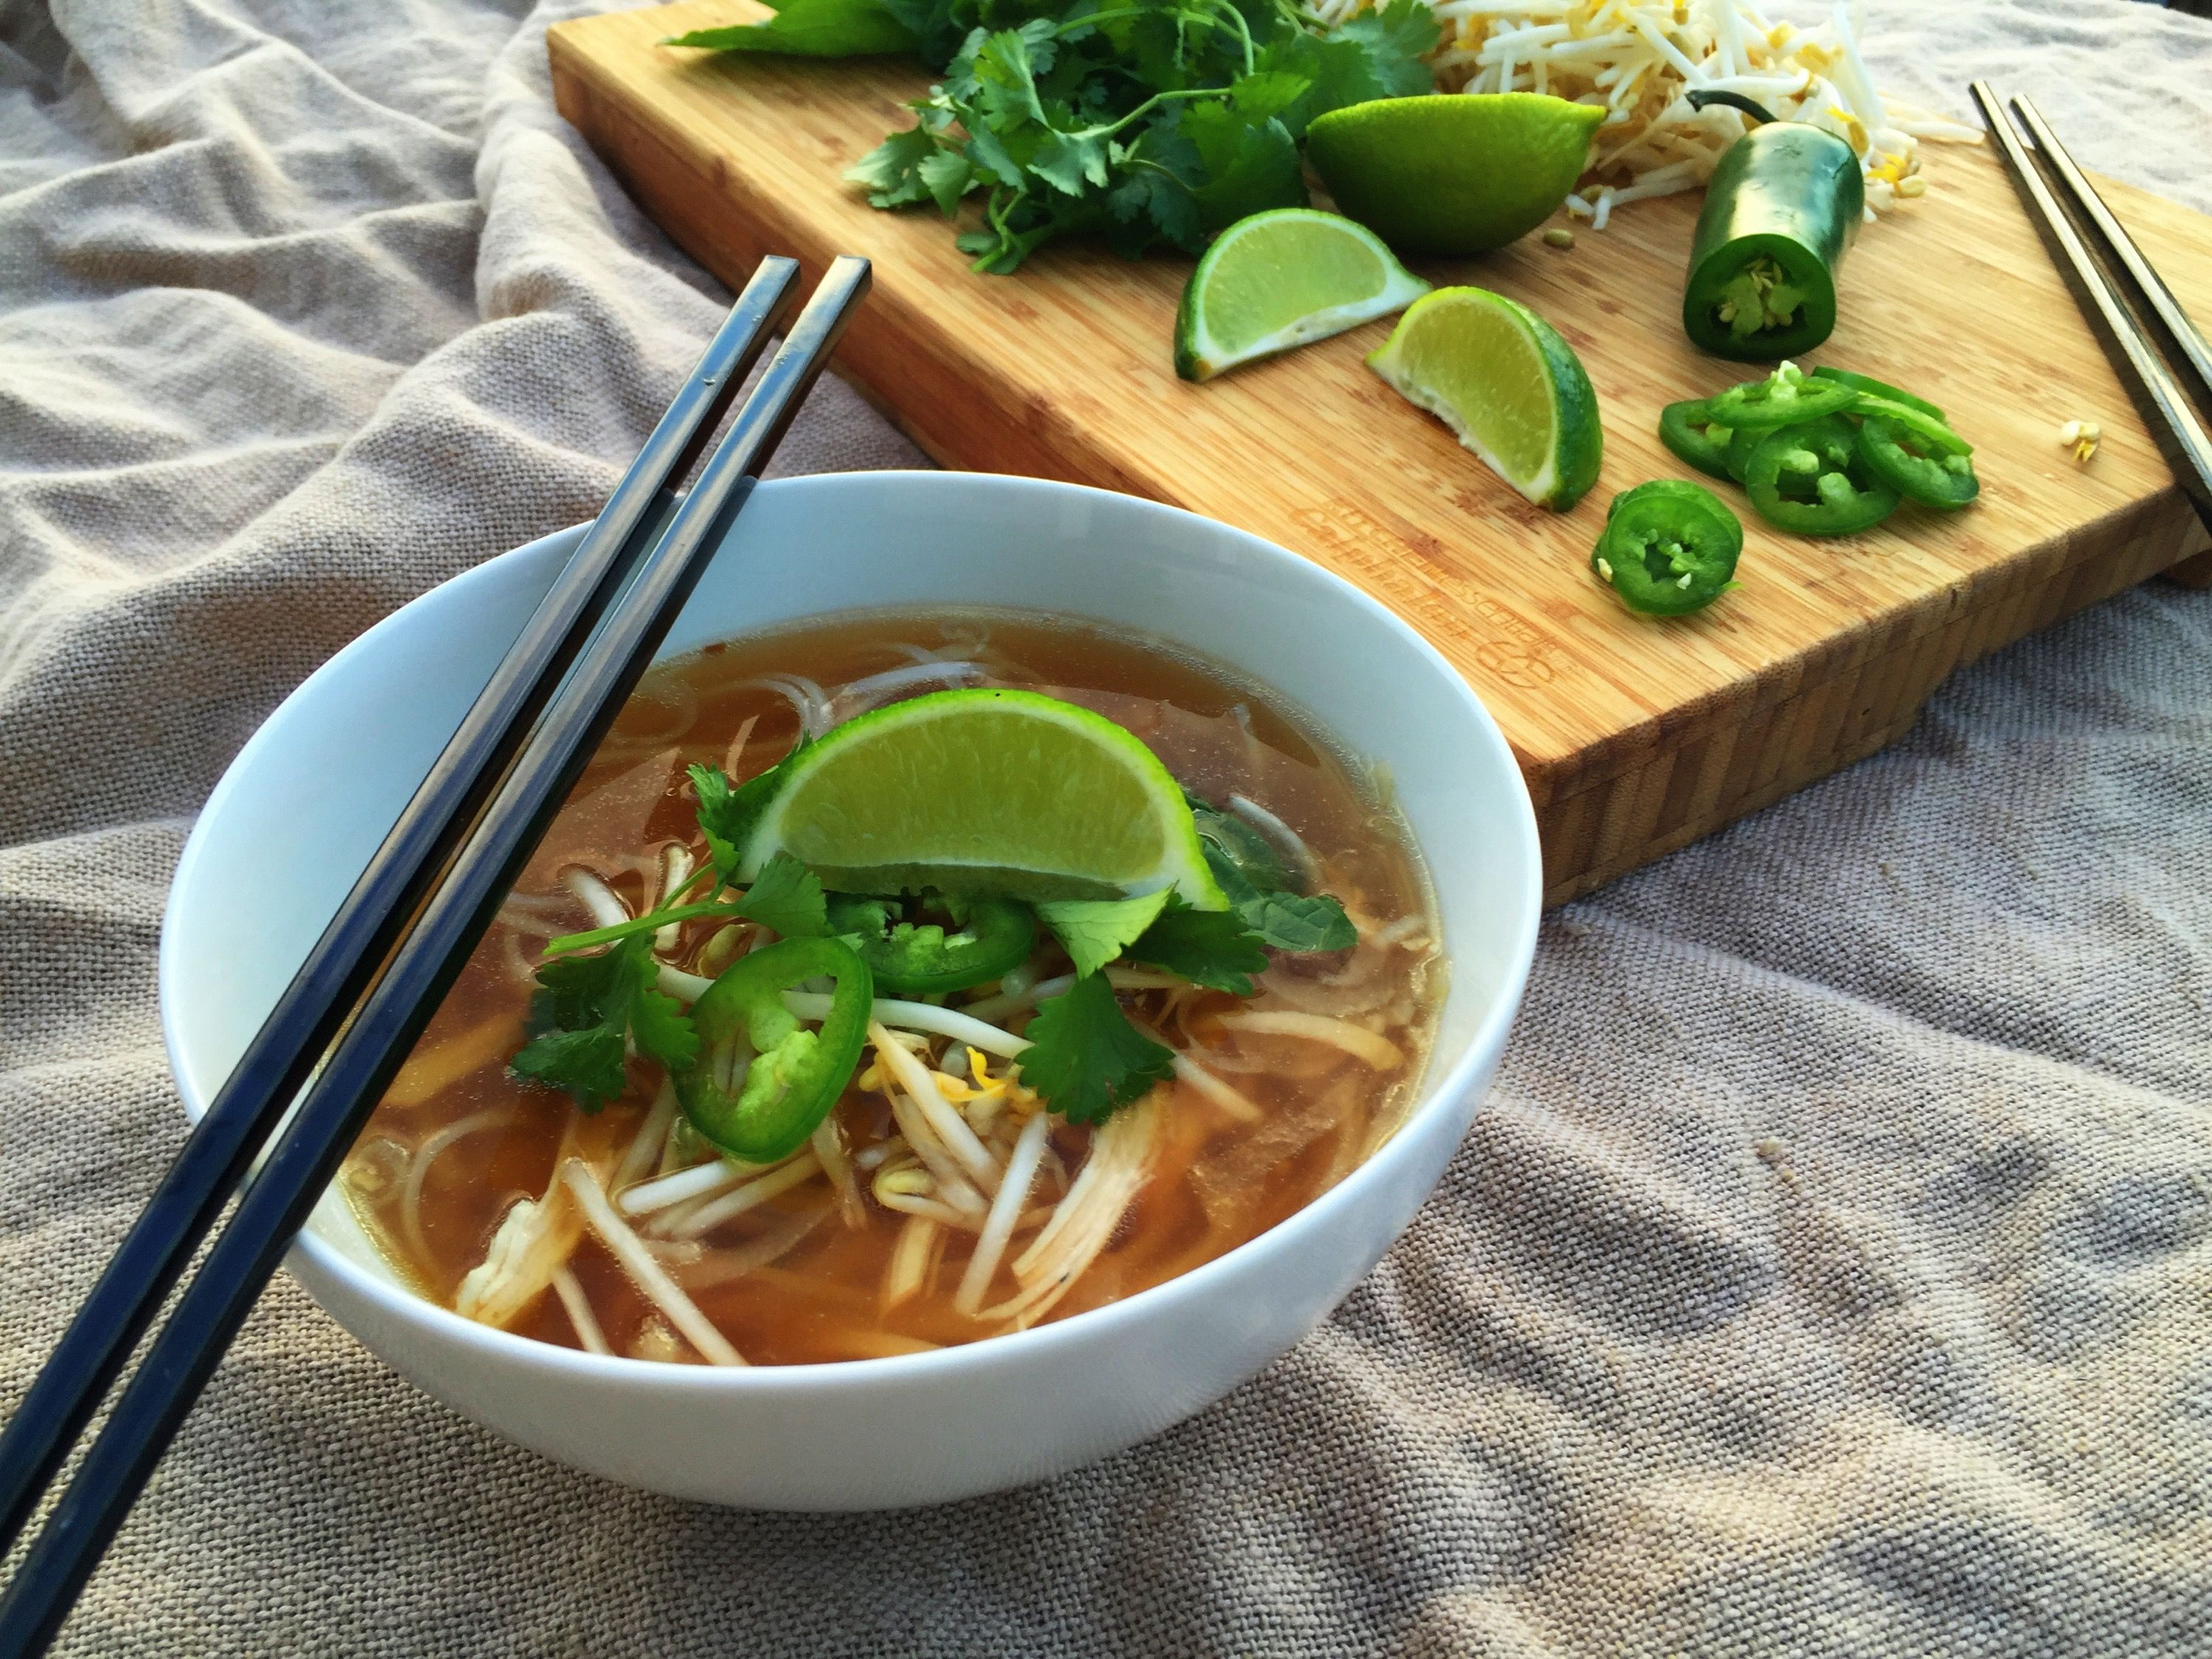 30 Minute Chicken Pho (Noodle Soup) by Eating with a Purpose